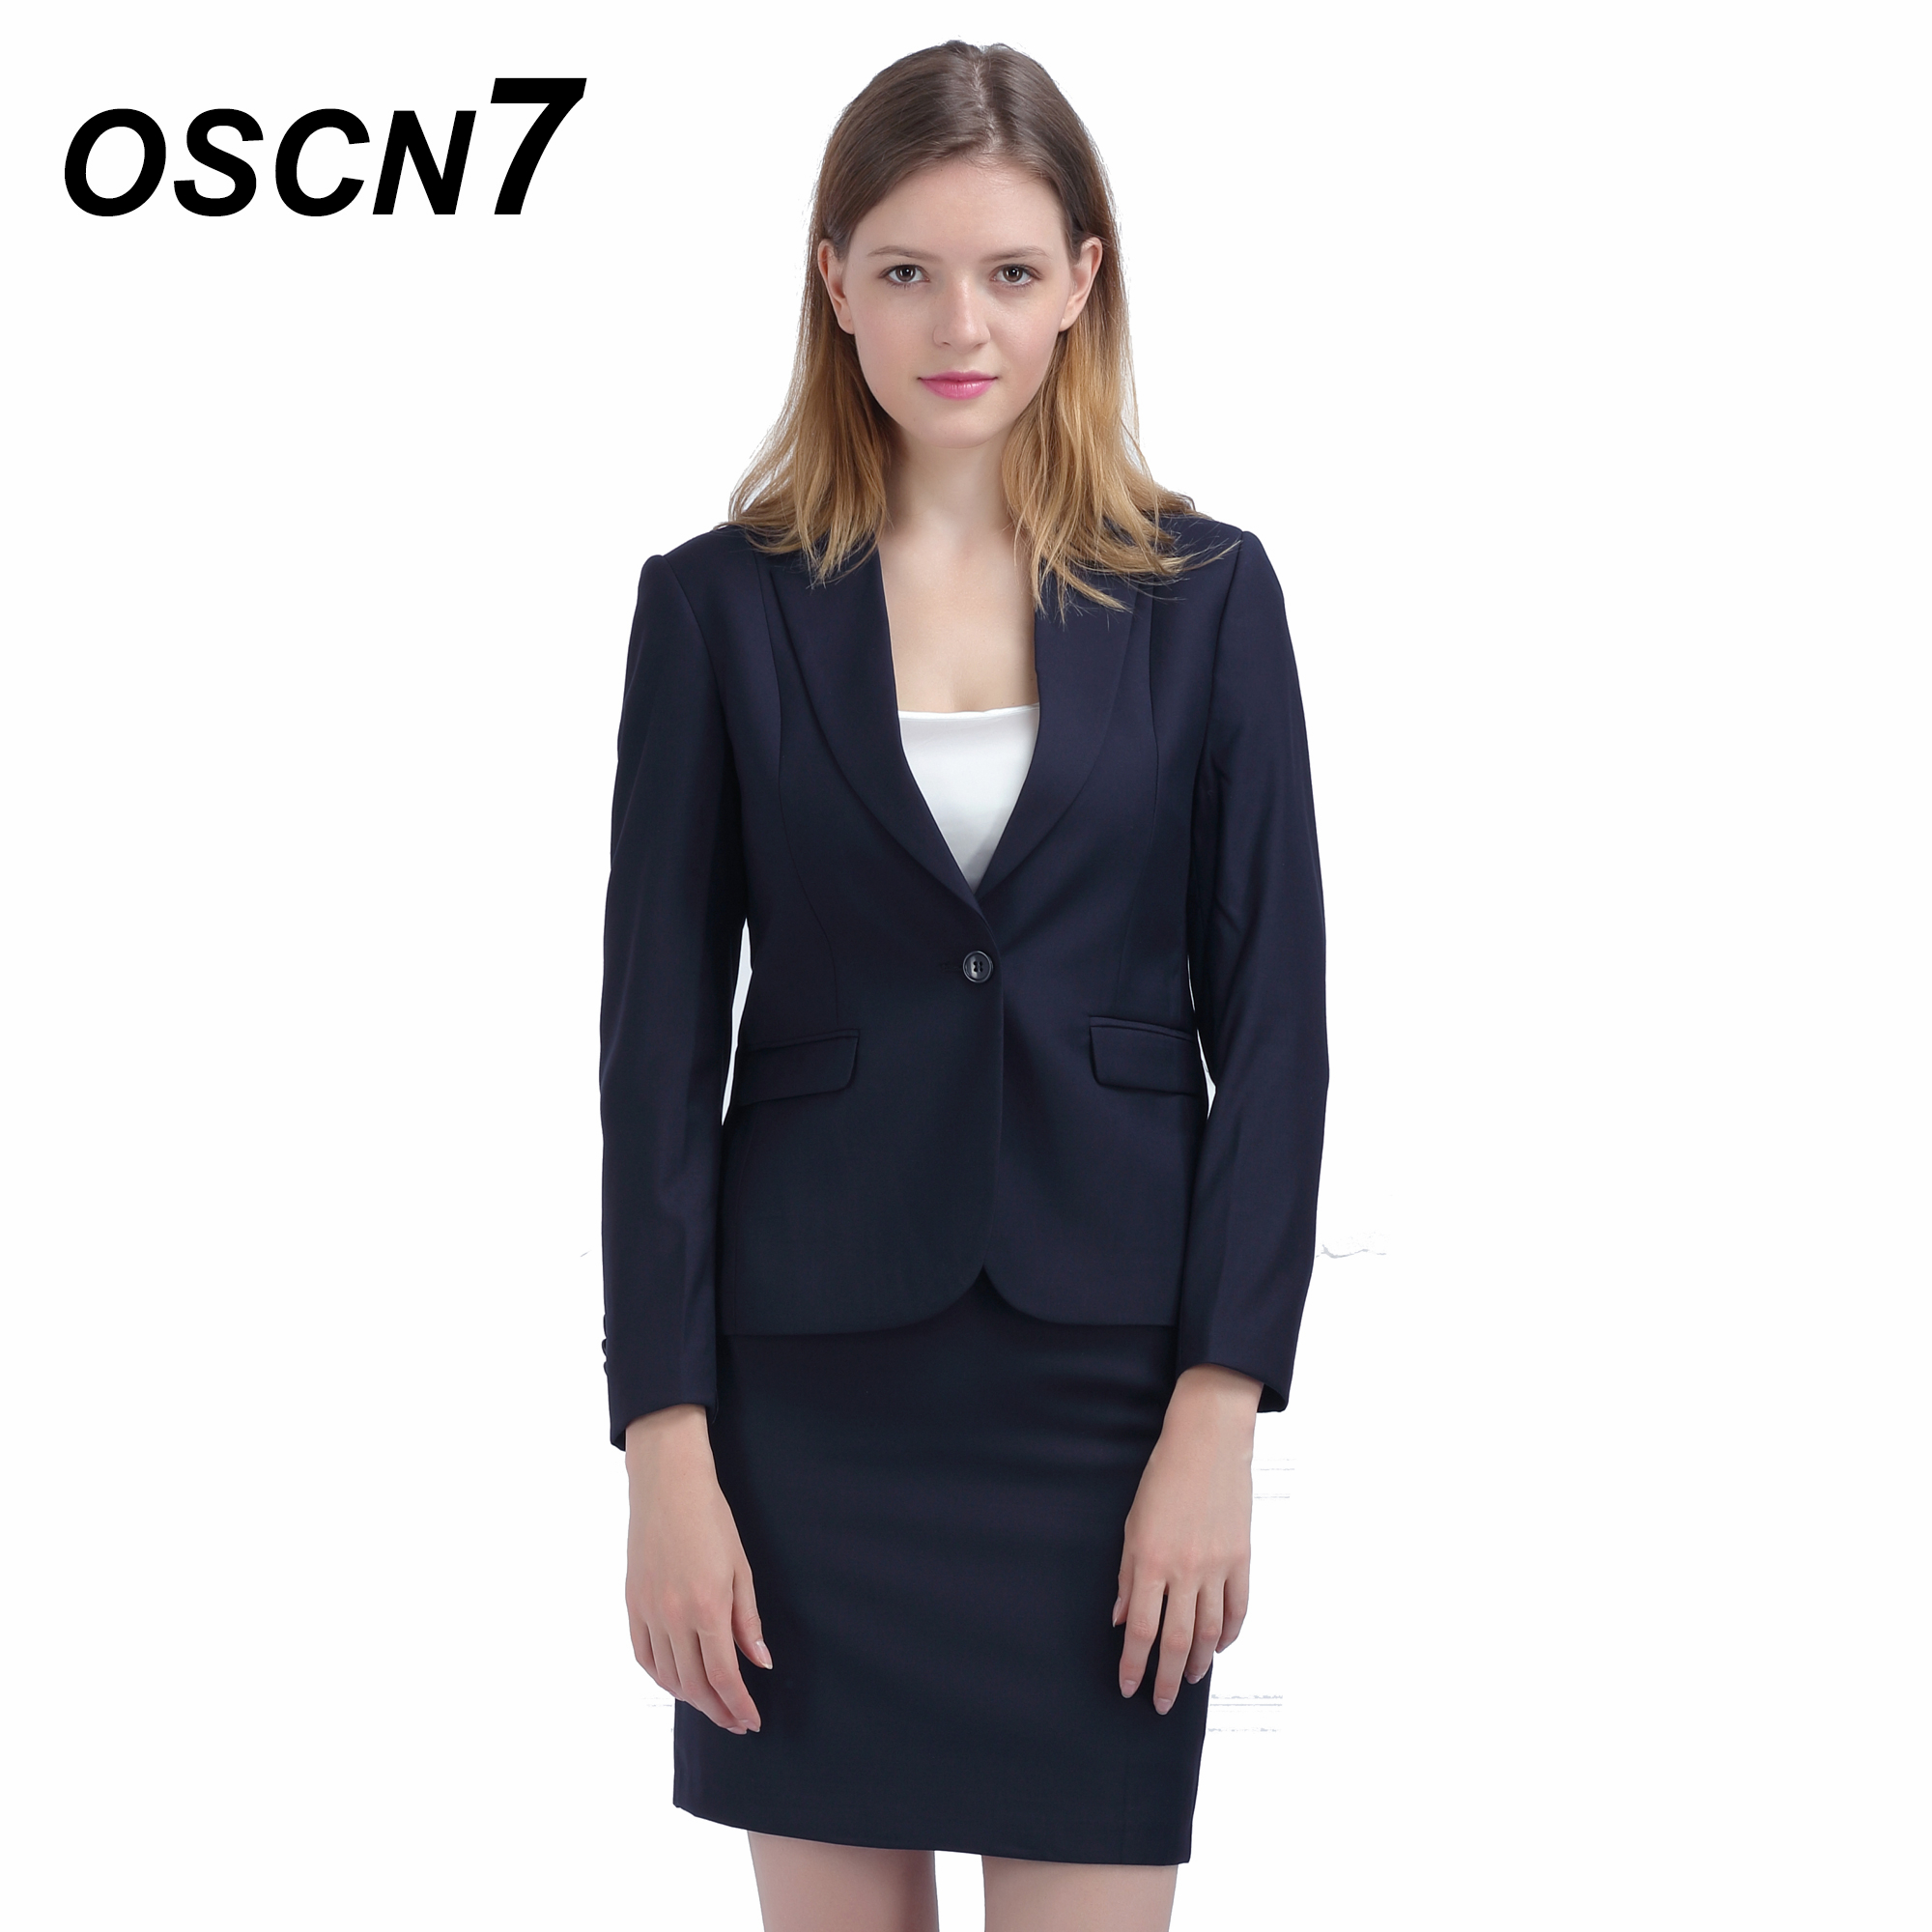 Strong-Willed Oscn7 Dark Blue Skirt Suit Fashion 2018 Slim Fit Leisure Office Uniform Plus Size Ladies Suit With Skirt 153 Pure Whiteness